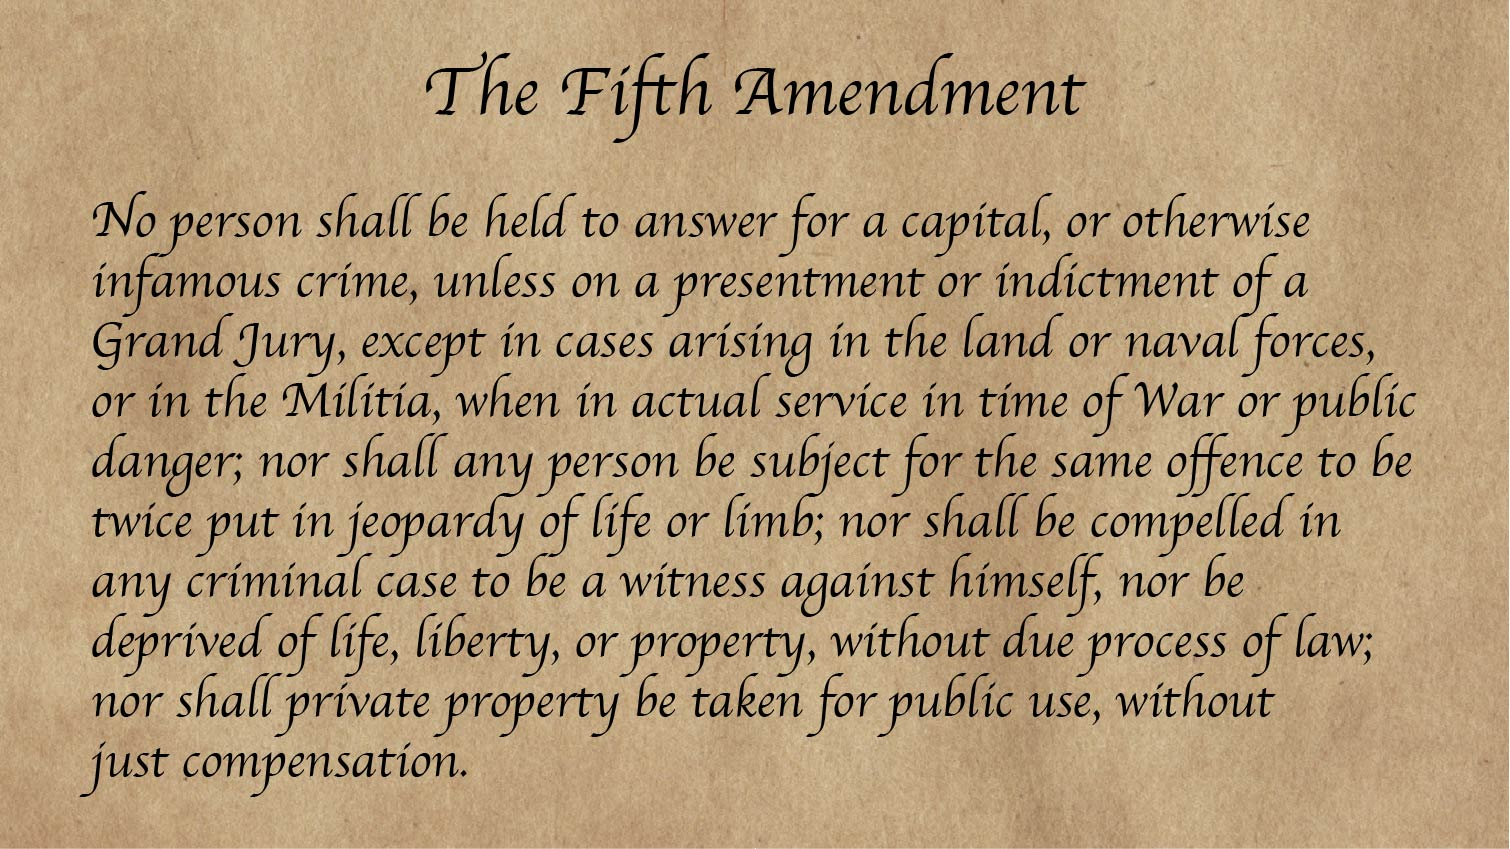 Language of the Fifth Amendment